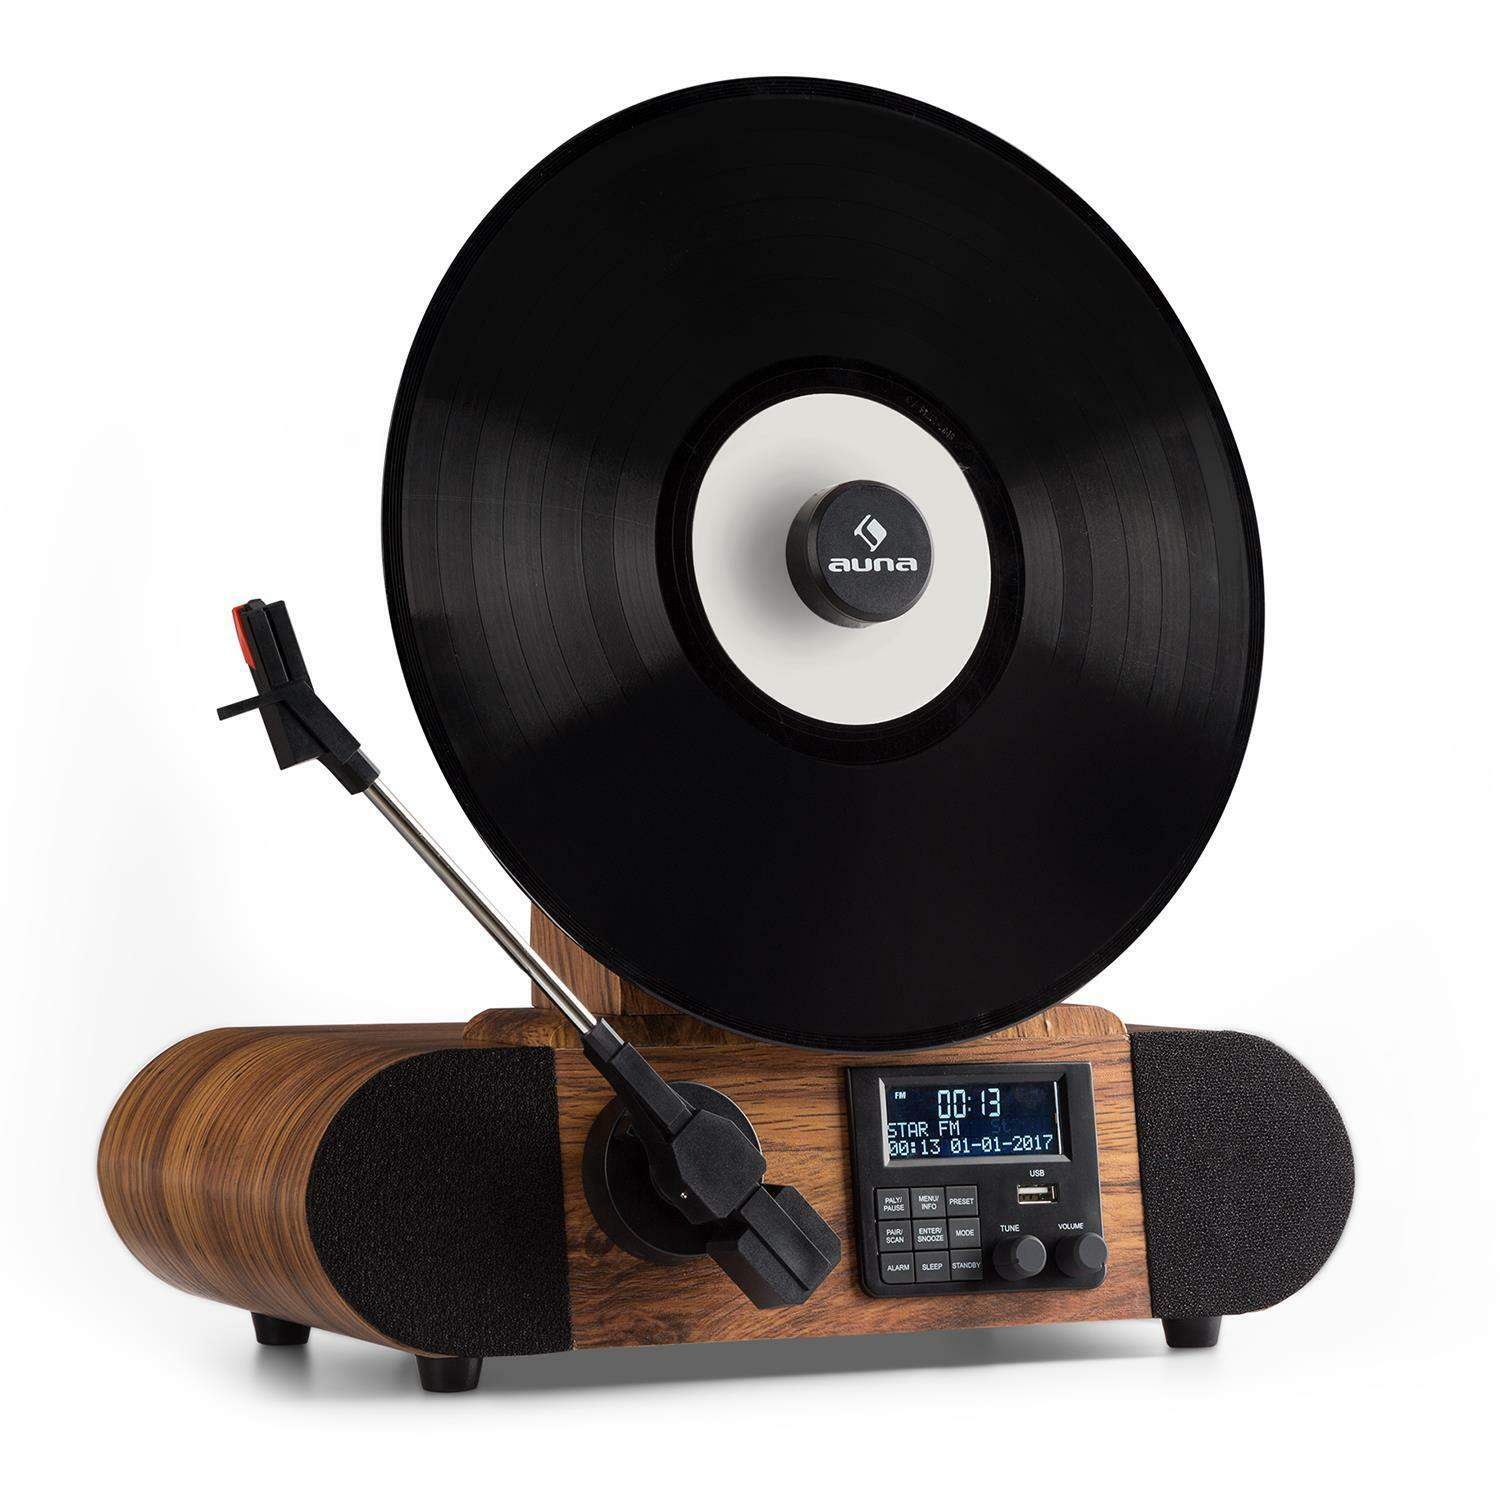 retro turntable vinyl record player dab radio fm bluetooth lp music wood veneer. Black Bedroom Furniture Sets. Home Design Ideas